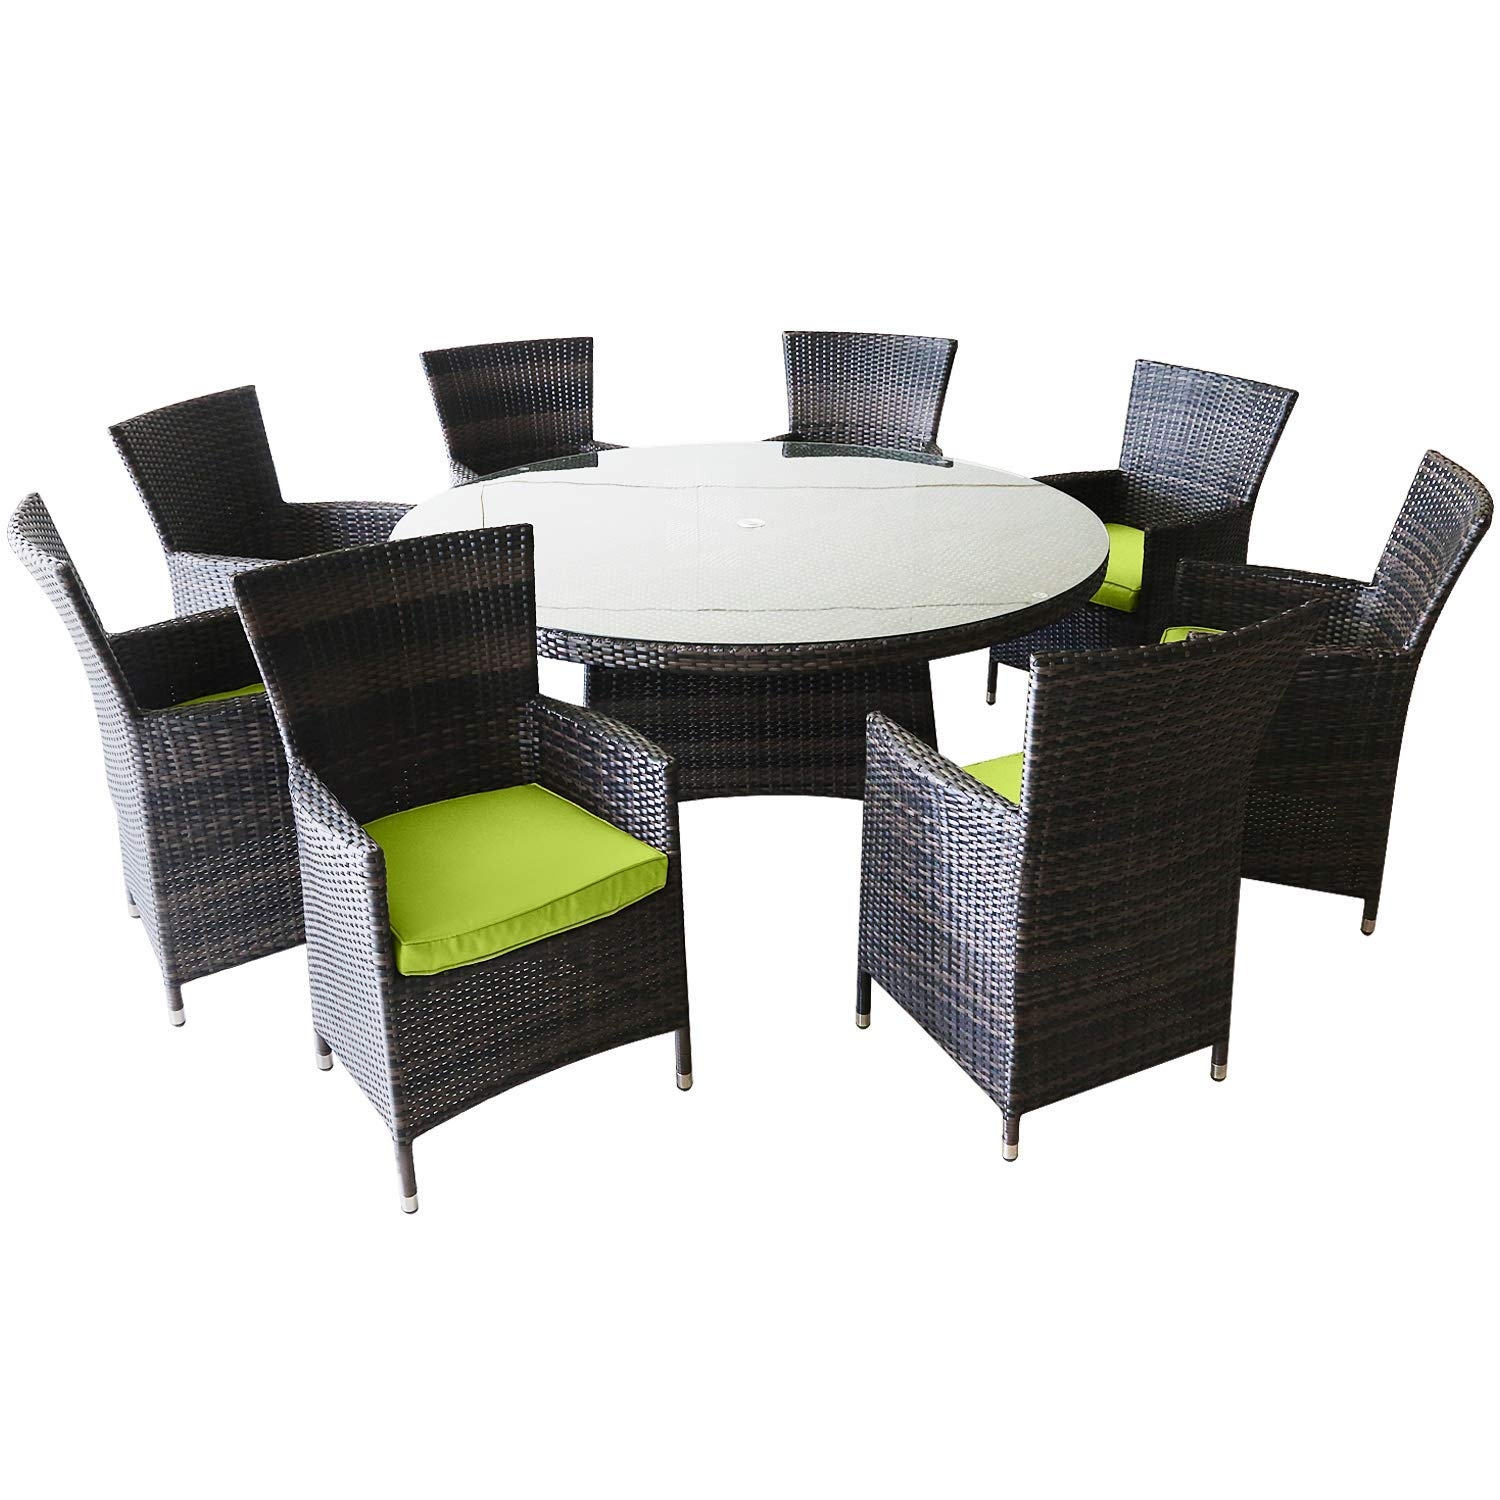 Patioption 9 Pieces (8 Seats) Outdoor Patio Furniture Dining Table Sets, All-Weather Rattan Chairs with Washable Green Cushions and Wicker Round Tempered Glass Table, Patio Conversation Sets (Green)